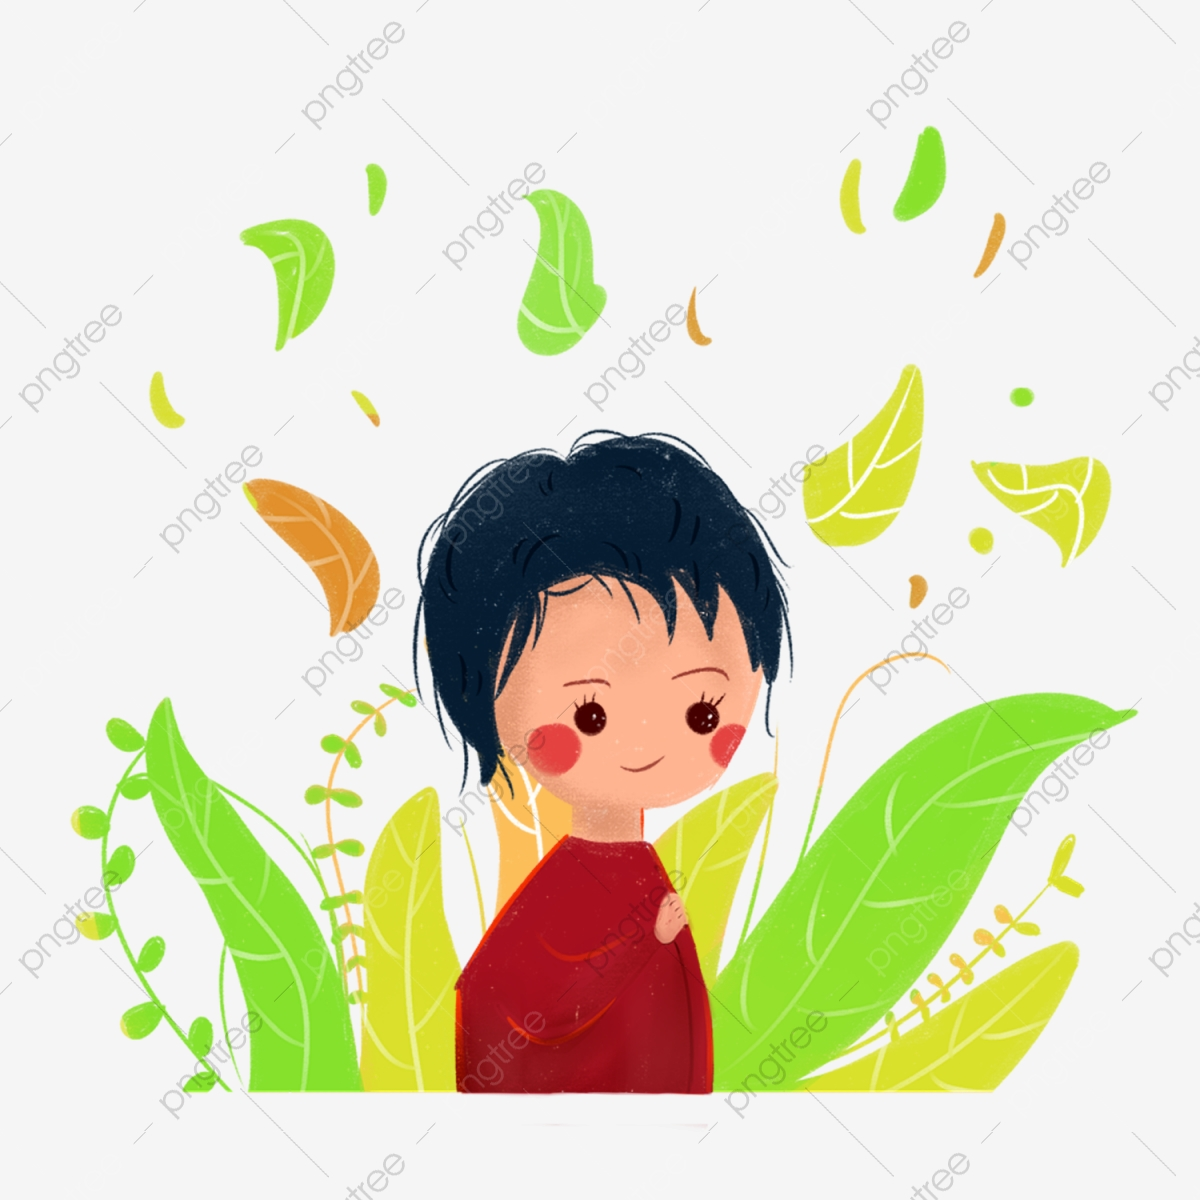 hight resolution of commercial use resource upgrade to premium plan and get license authorization upgradenow toolbox child toolbox clipart